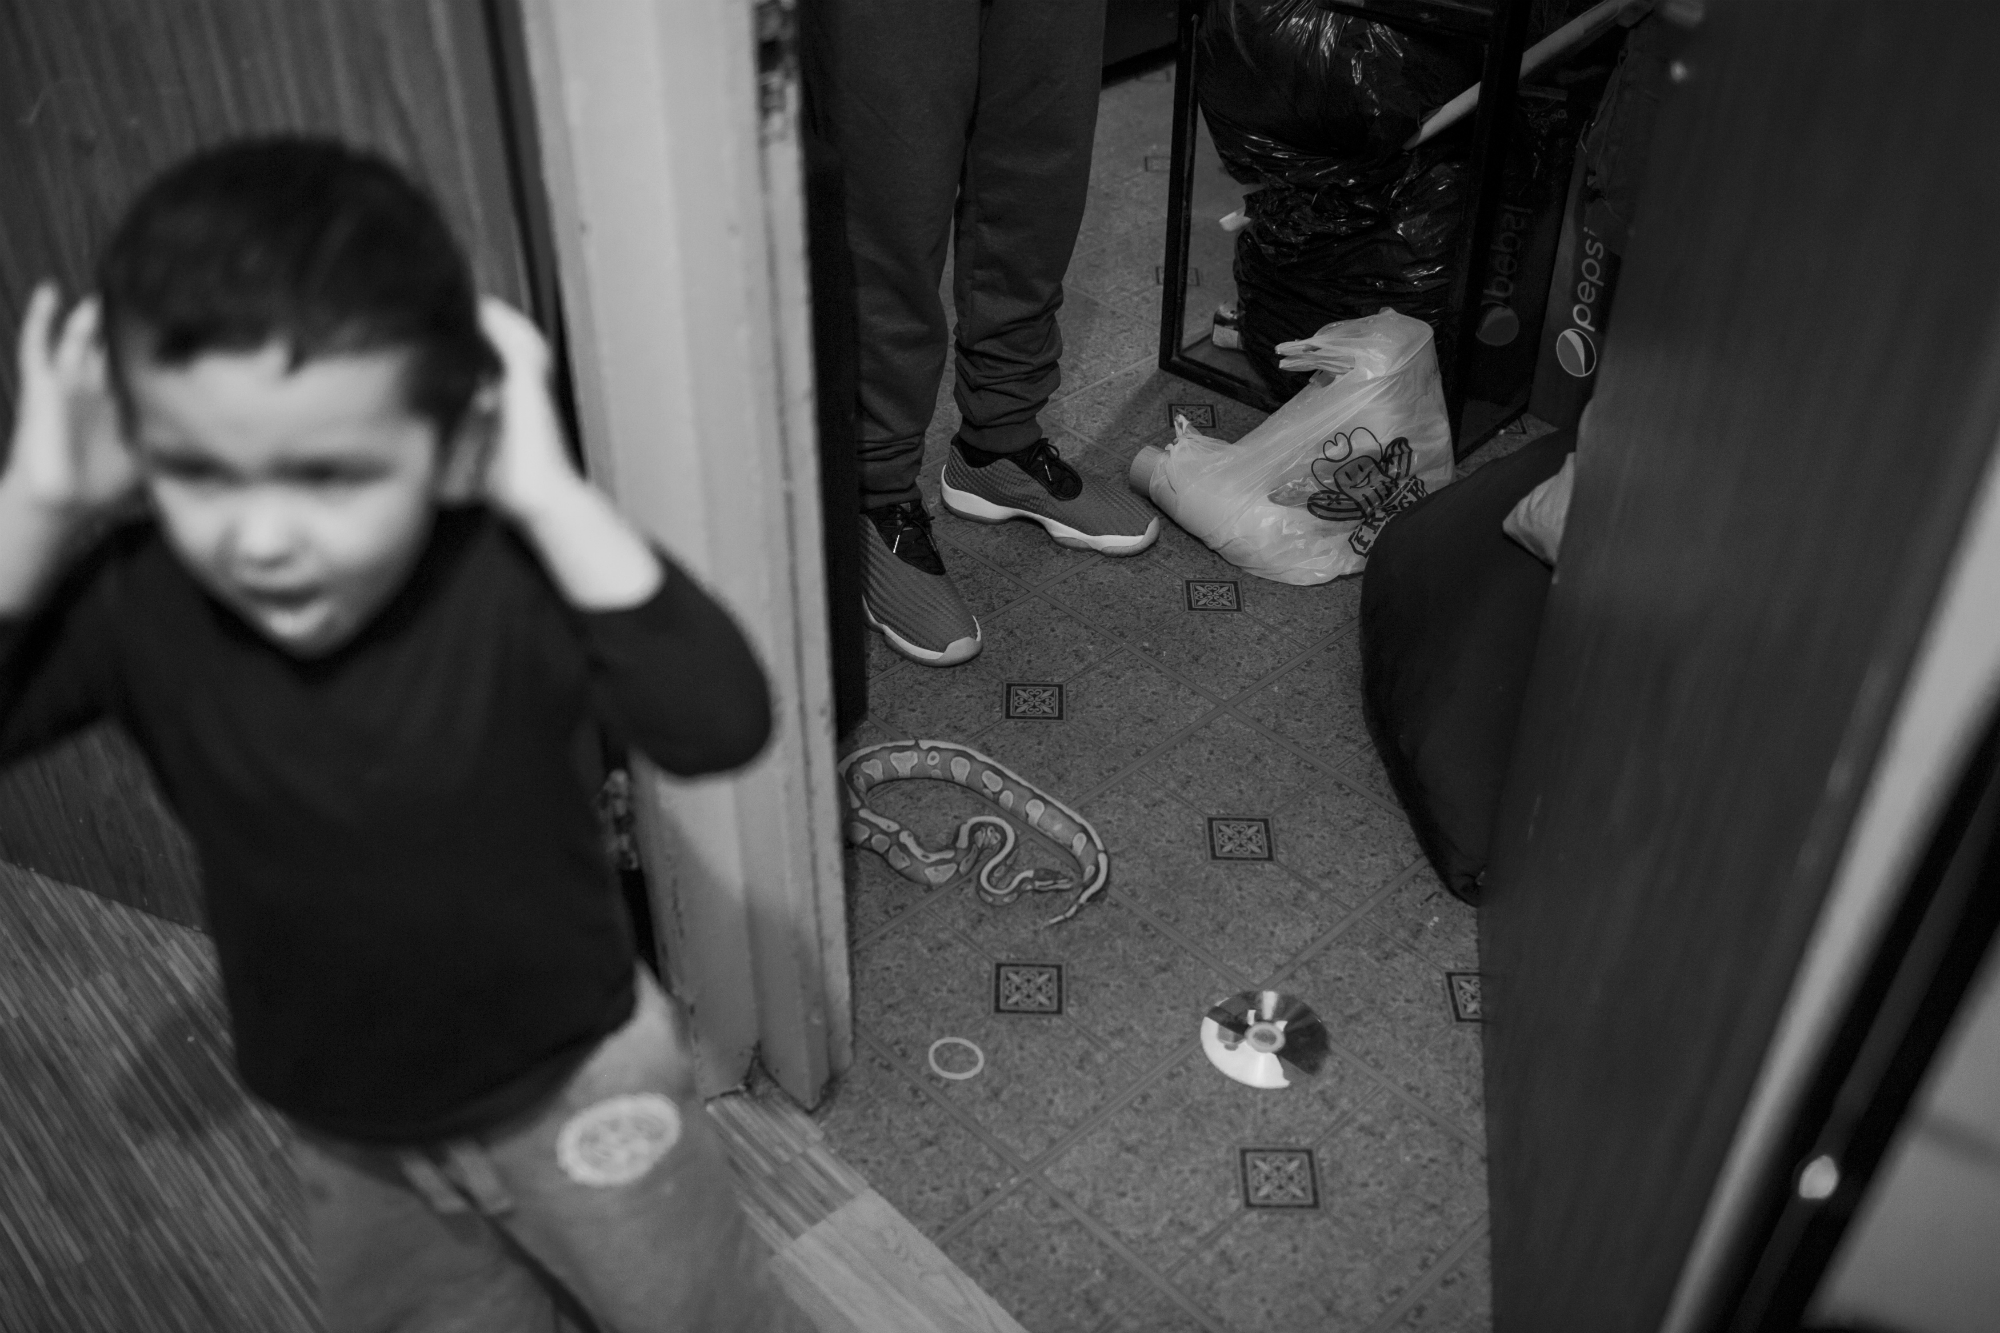 Two-year-old Christopher Oritz calls for his mother across the hallway in the Neiras' apartment, April 13, 2016, Mott Haven Houses, Mott Haven, New York. Christopher is autistic, and lives with his mom, grandma, and uncles at the Neiras' apartment. (Photo by Sarah Blesener/GroundTruth/Alexia Foundation)